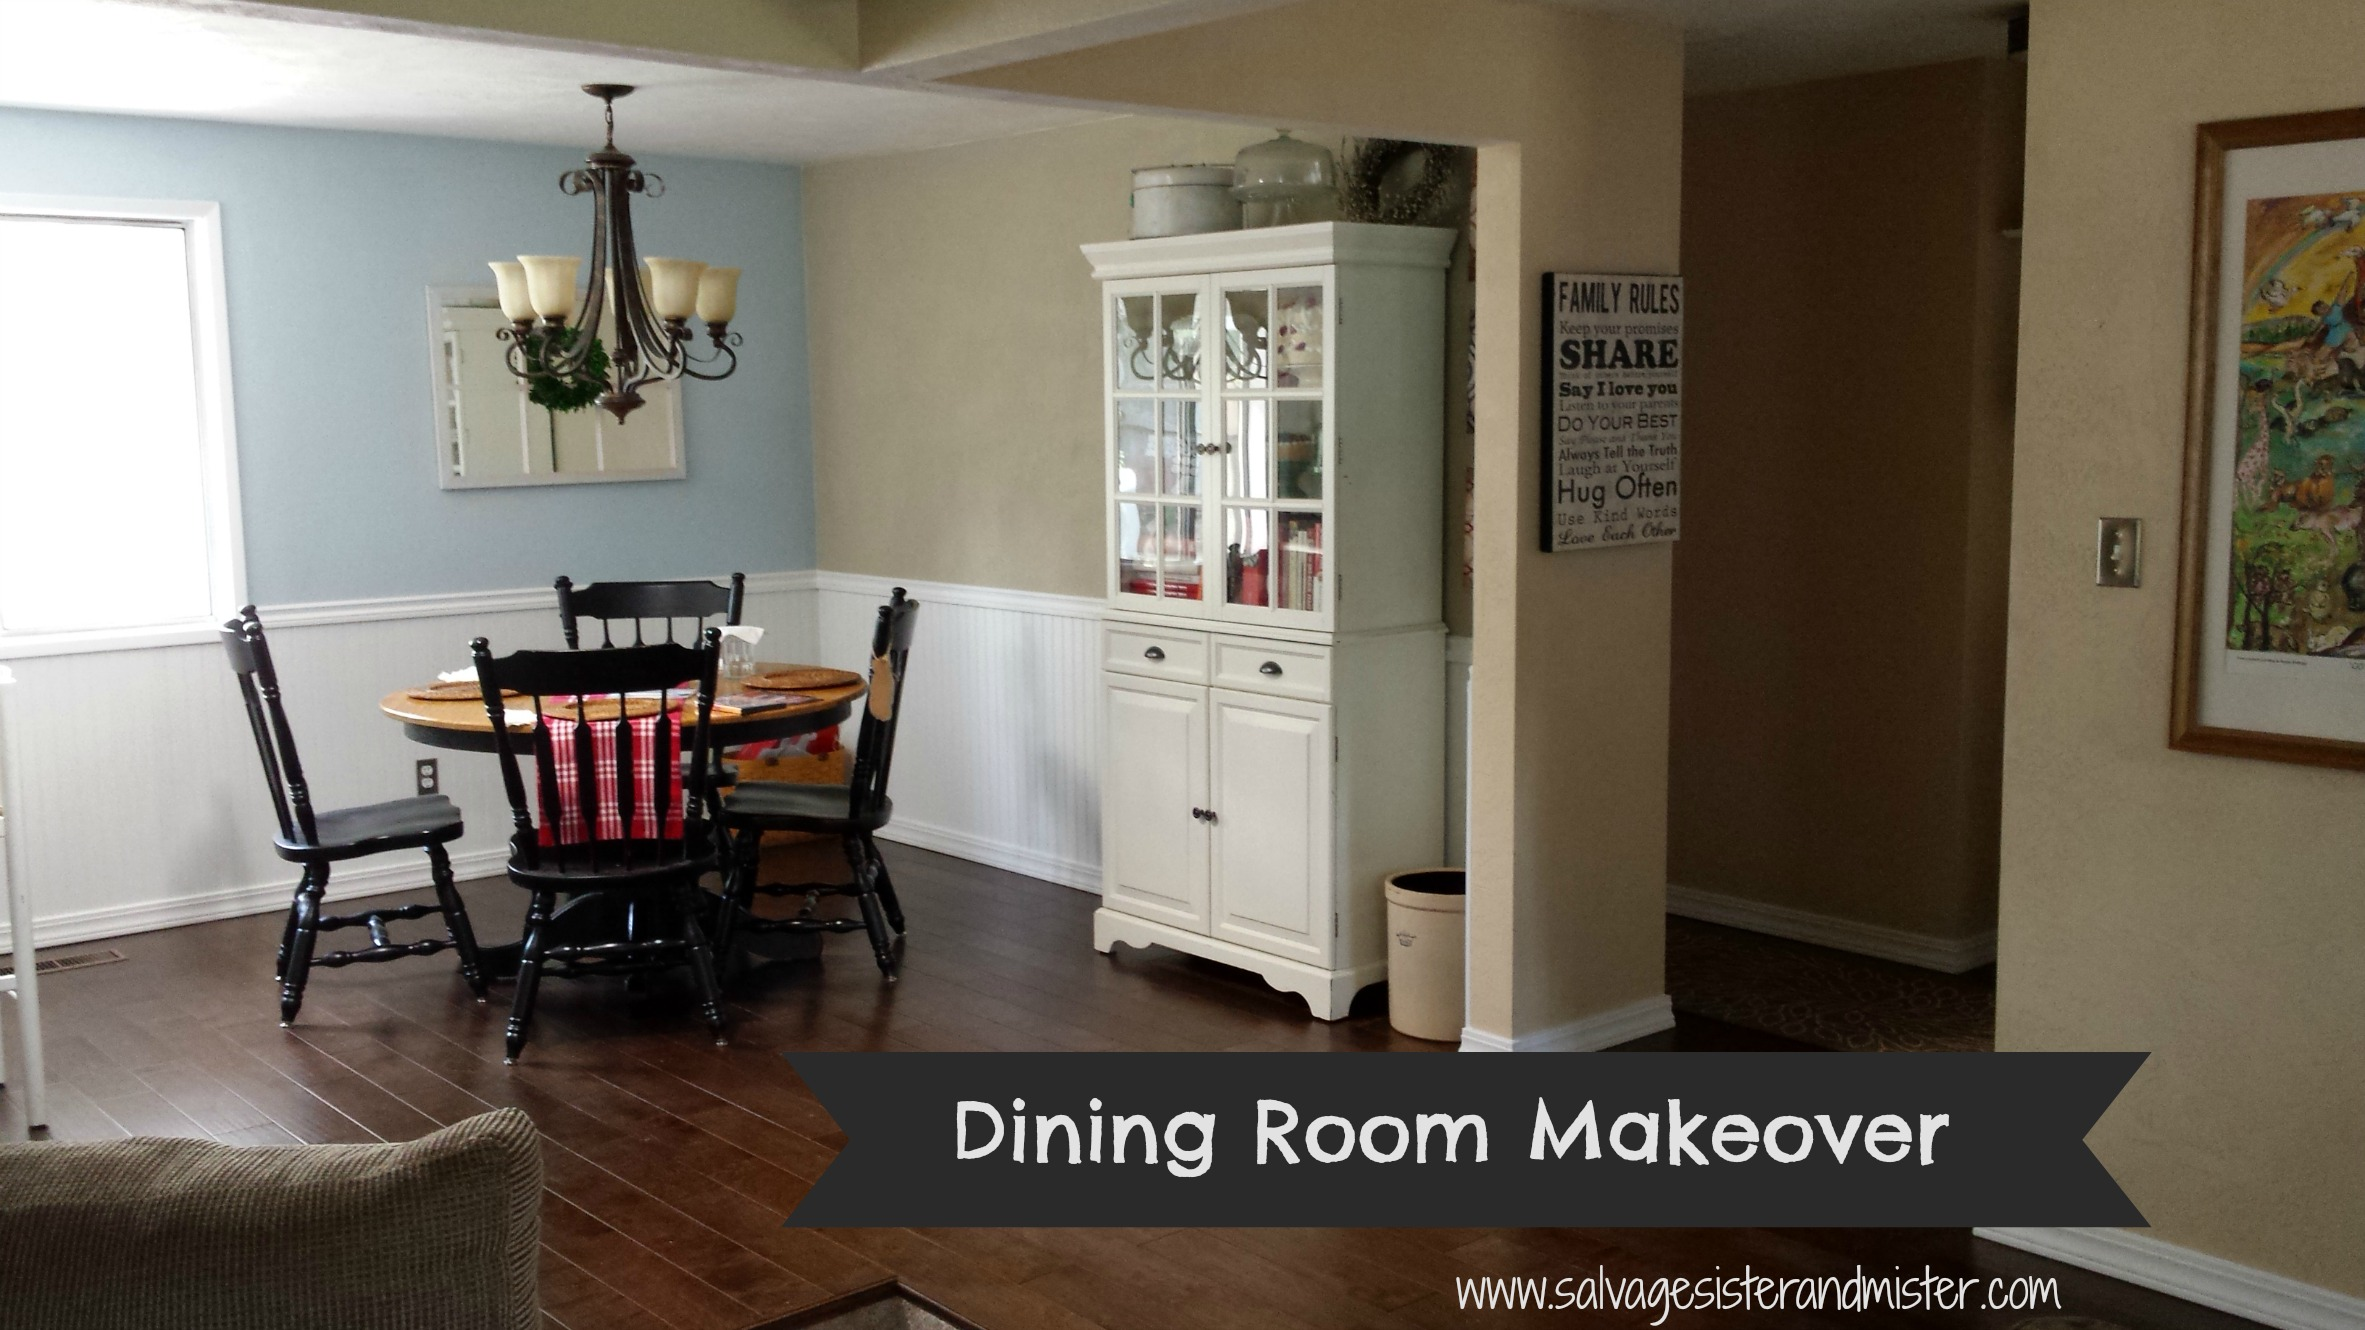 Dining Room Makeover Dining Room Makeover On A Budget Salvage Sister And Mister